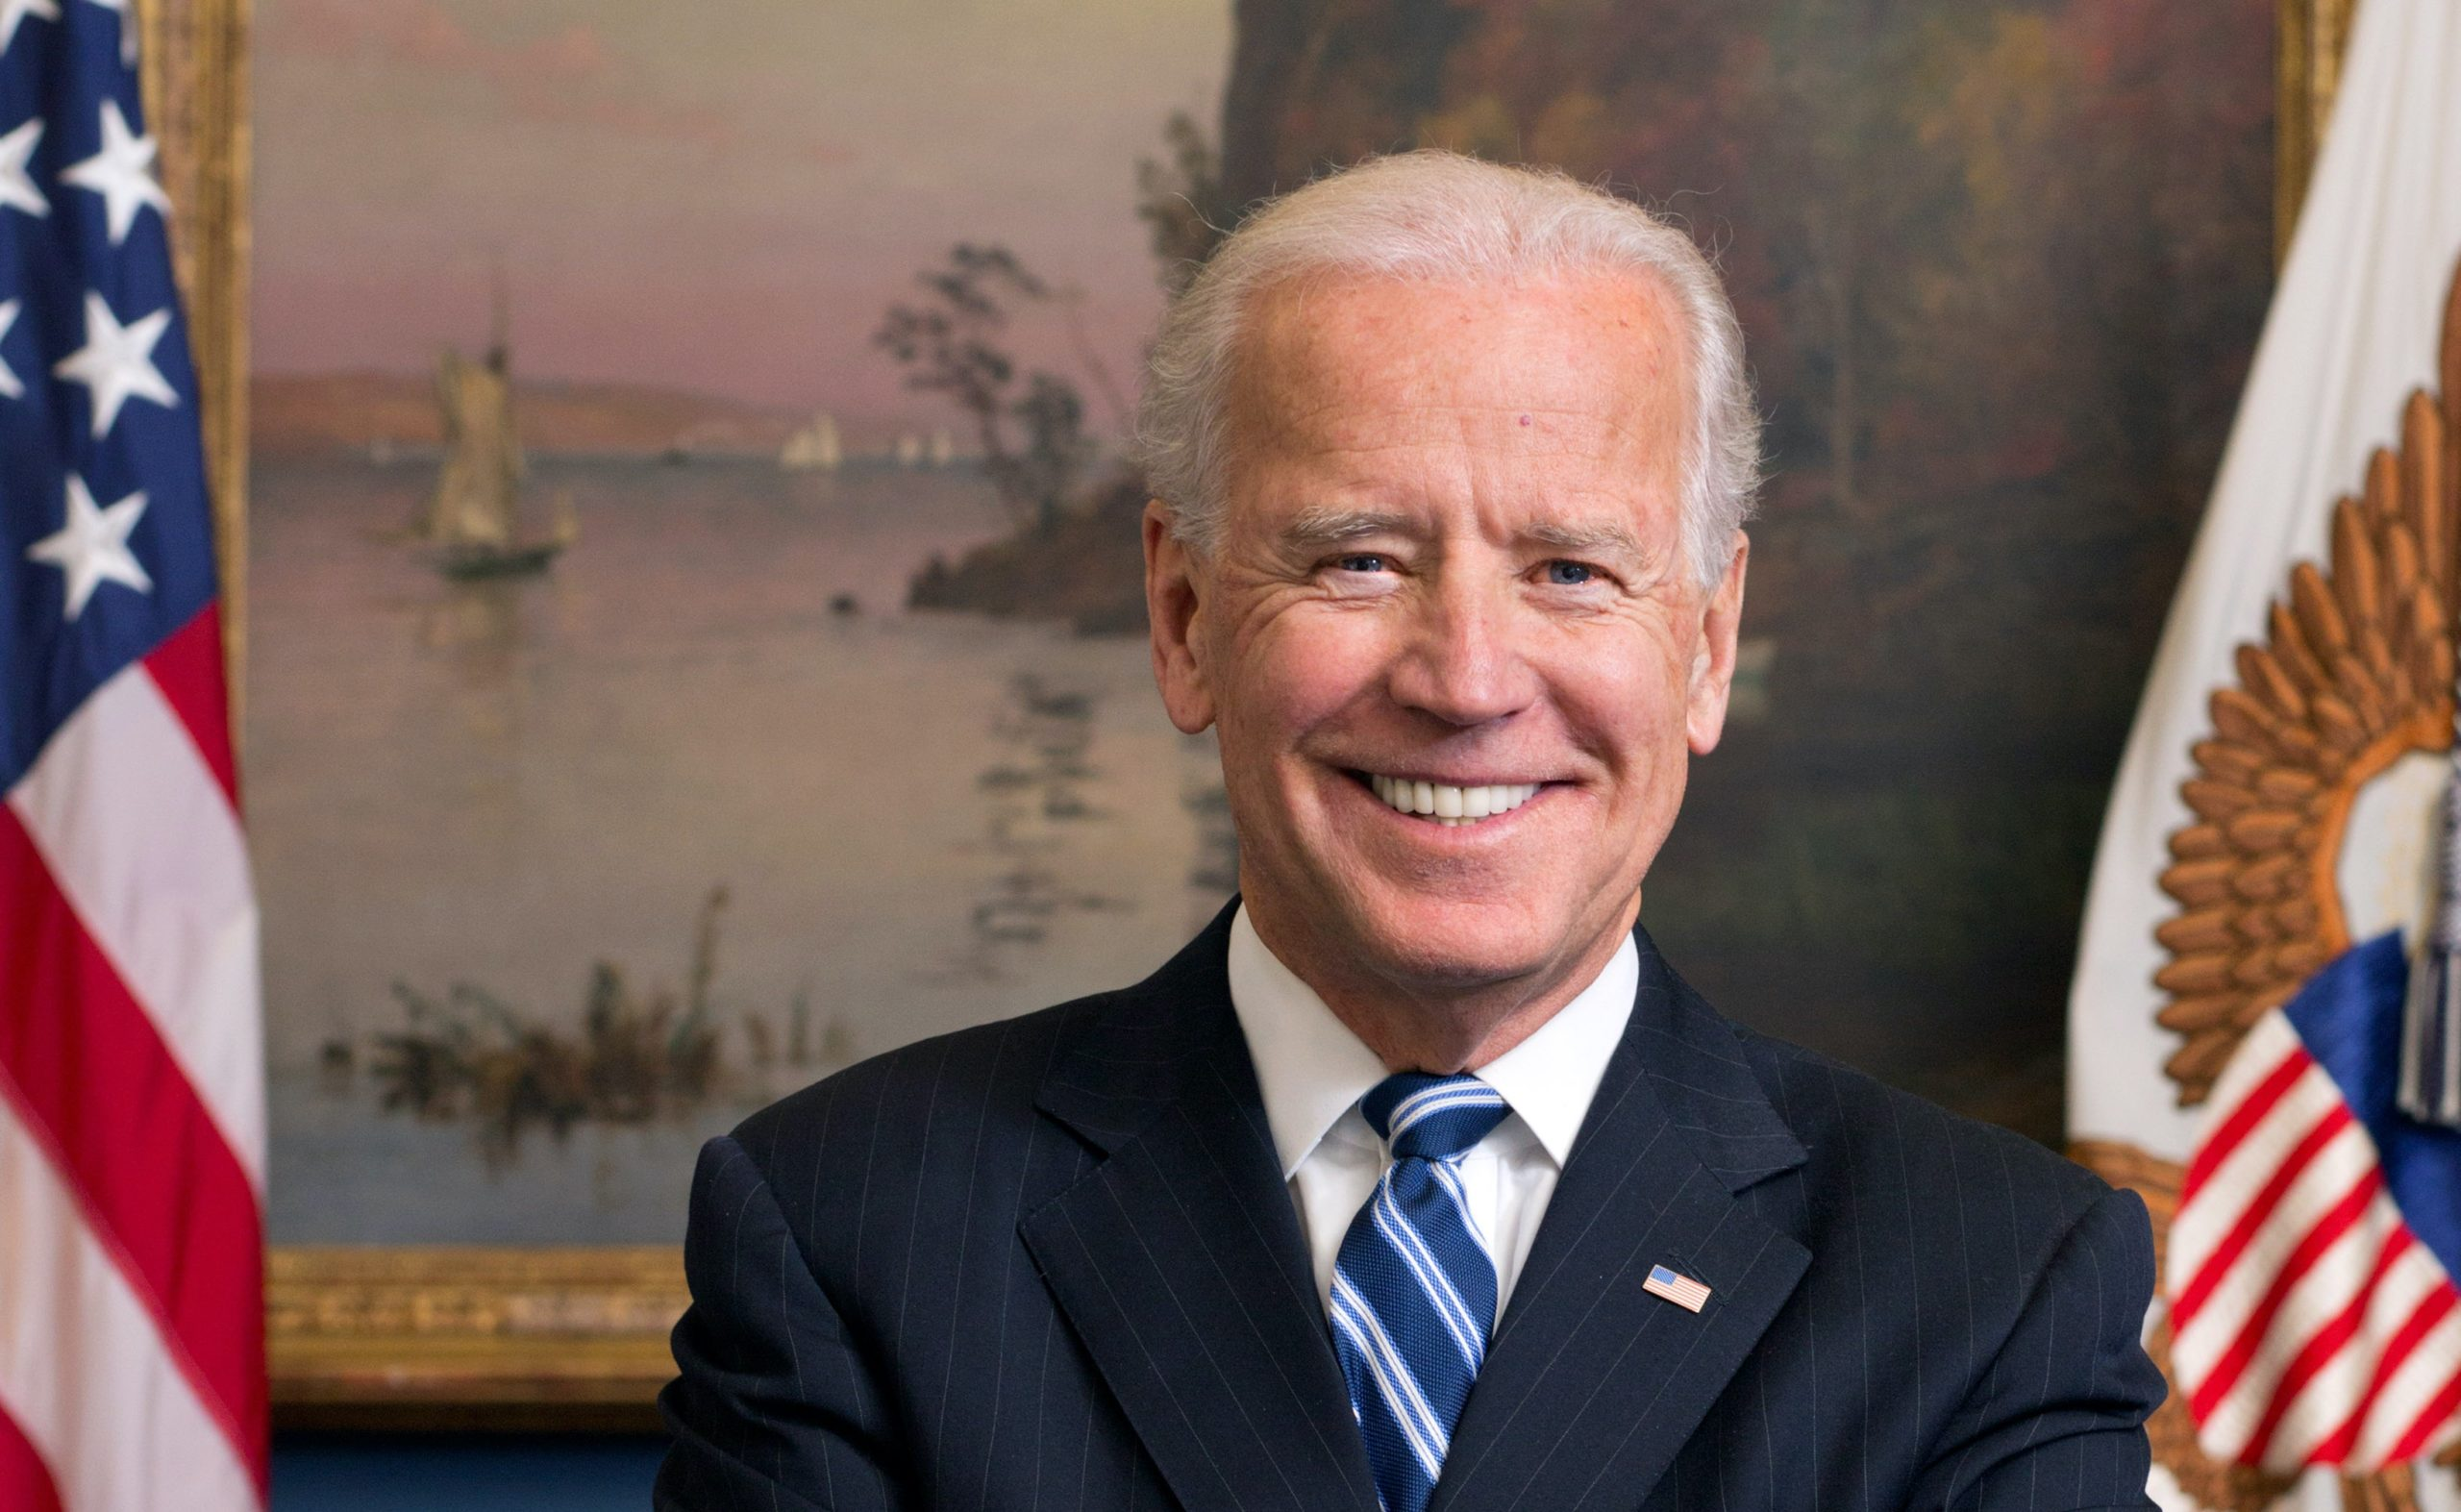 Joe Biden, President of the USA